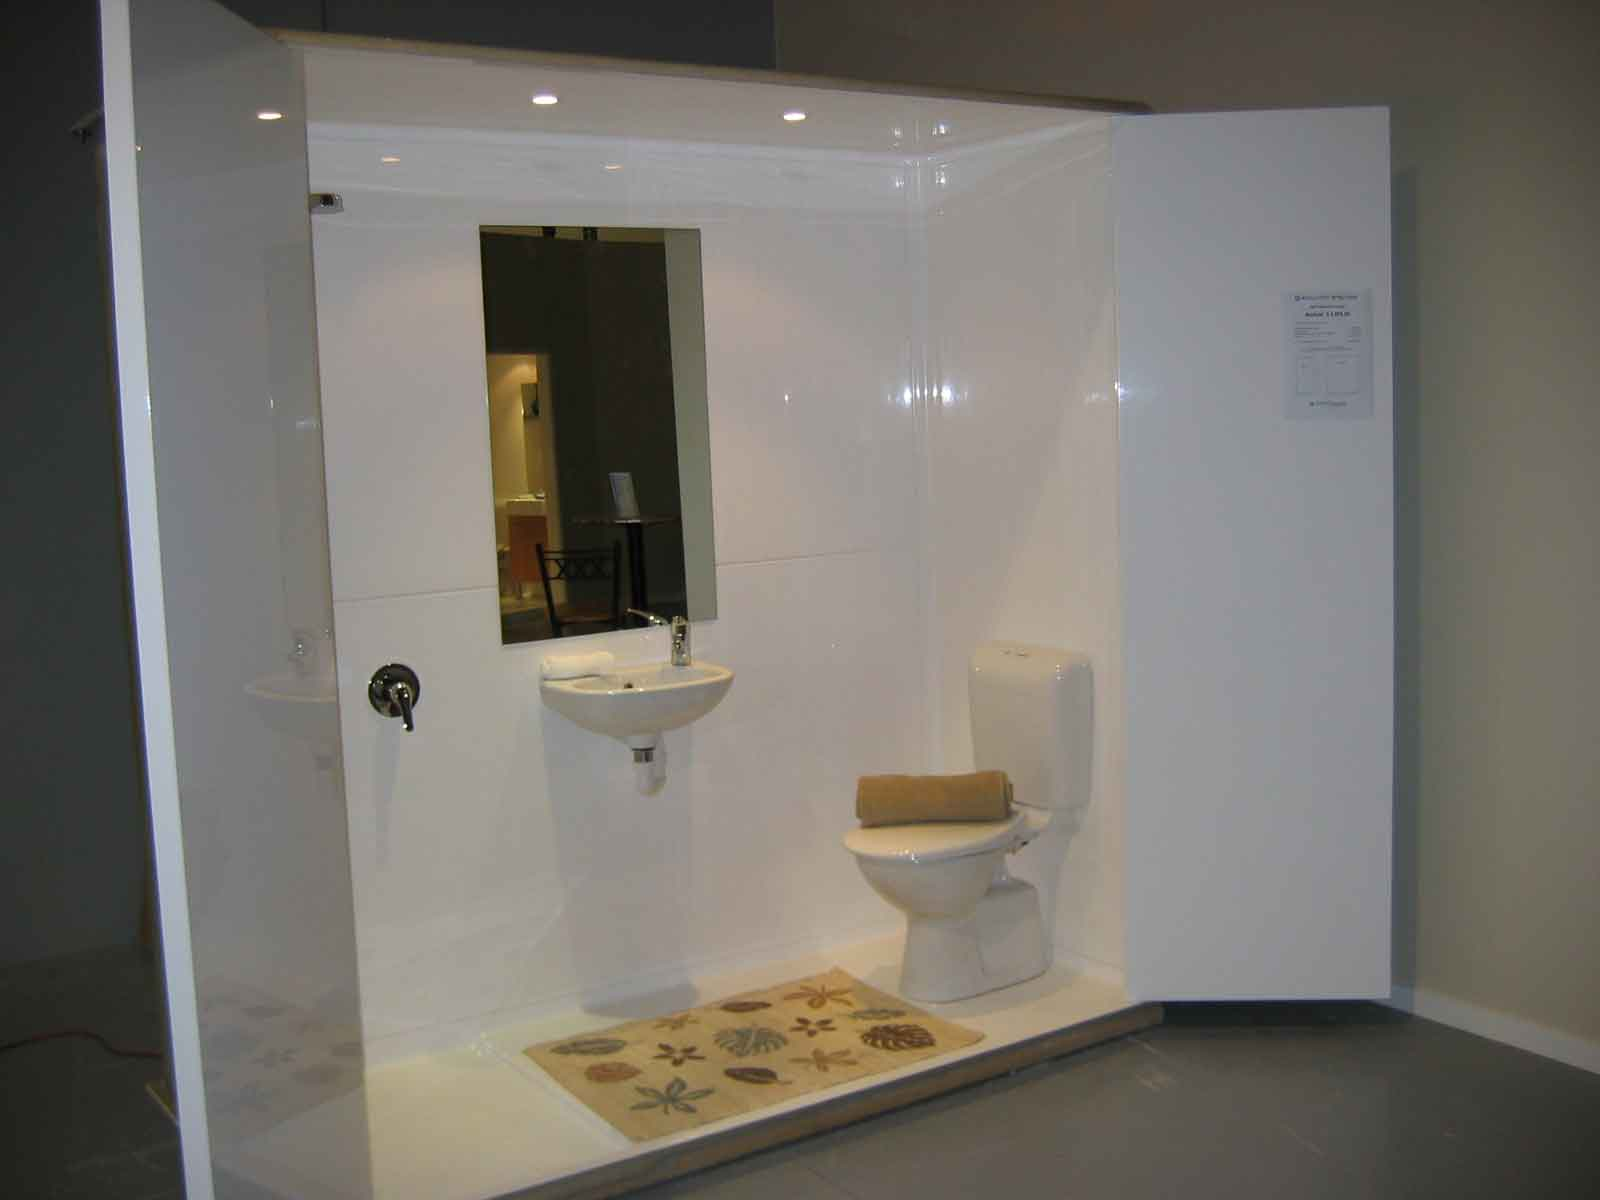 Ensuite Bathroom Facilities modular bathrooms and toilets for sale - flat packs